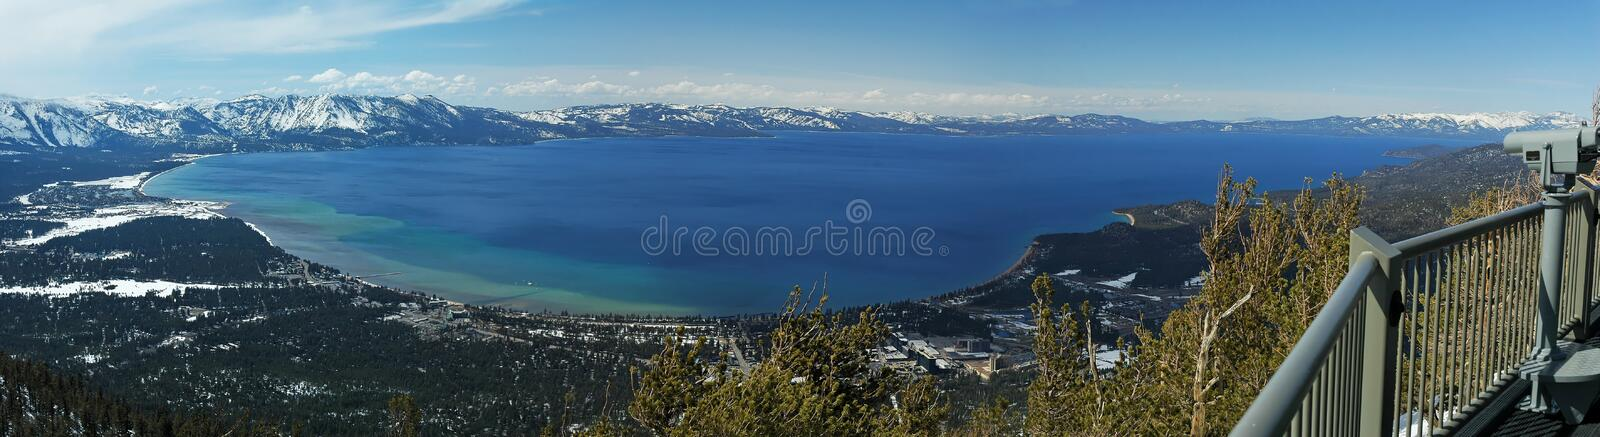 Lake Tahoe, California immagine stock